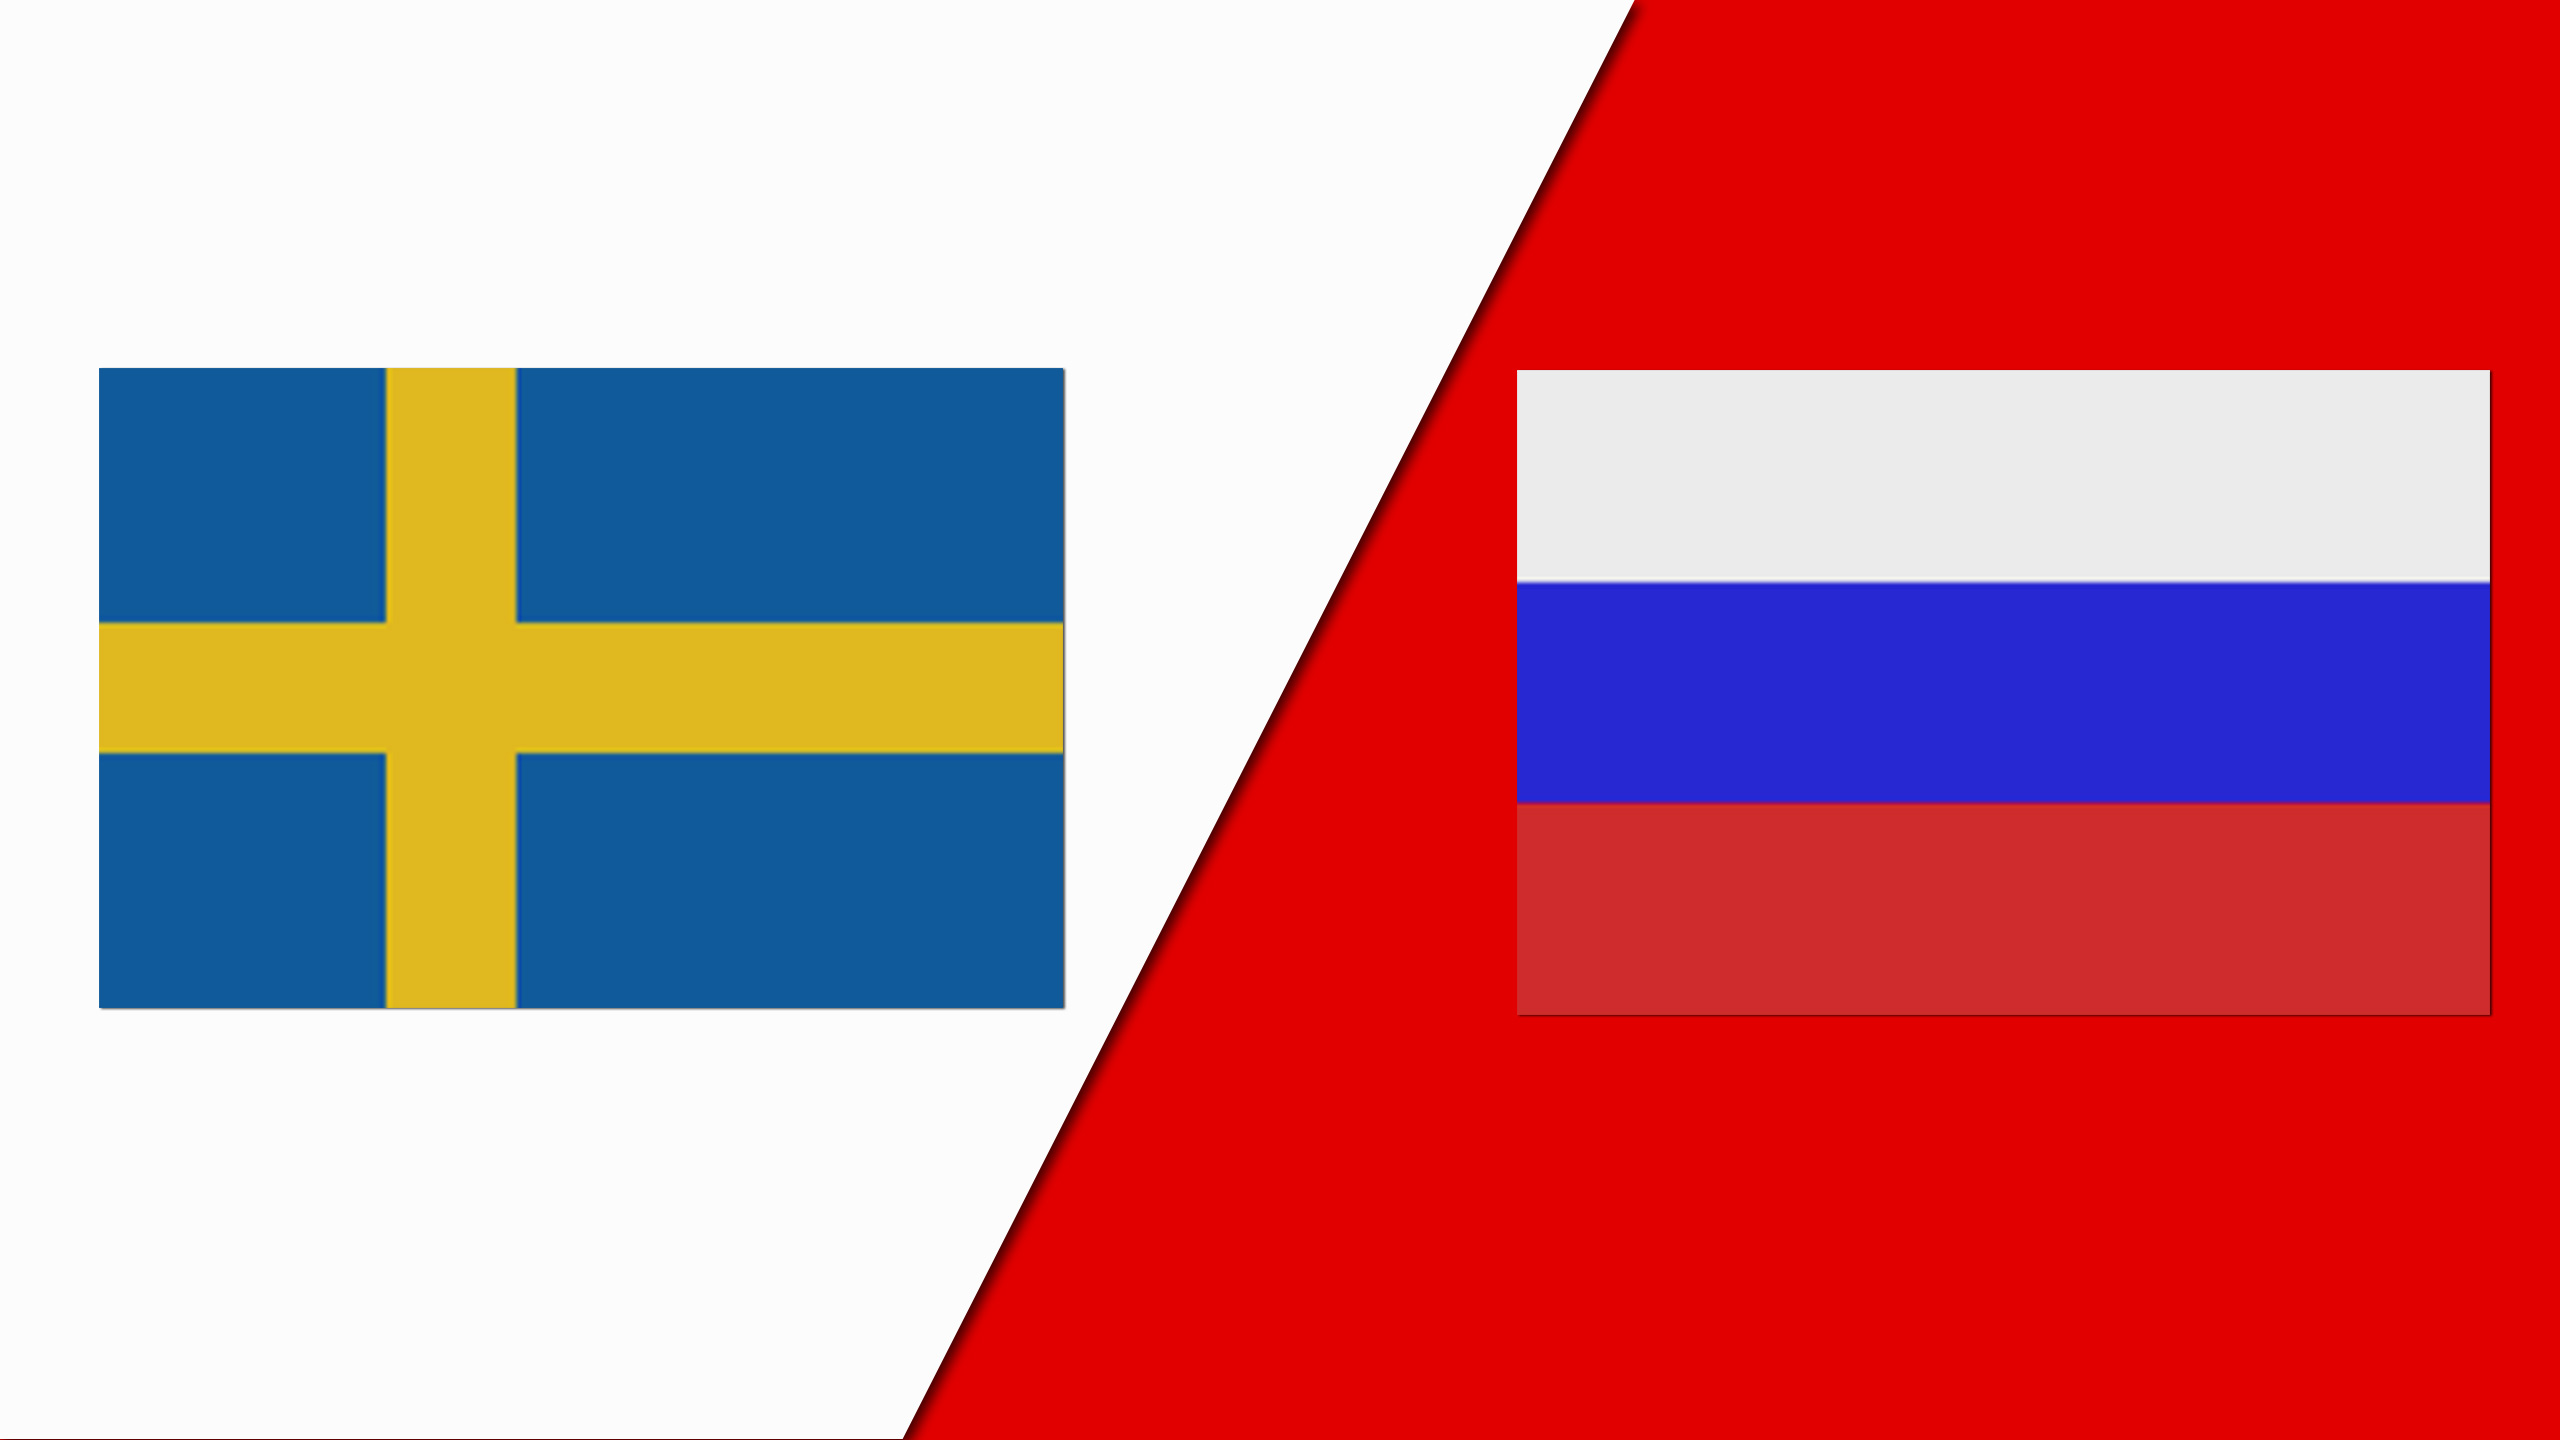 Sweden vs. Russia (UEFA Nations League)